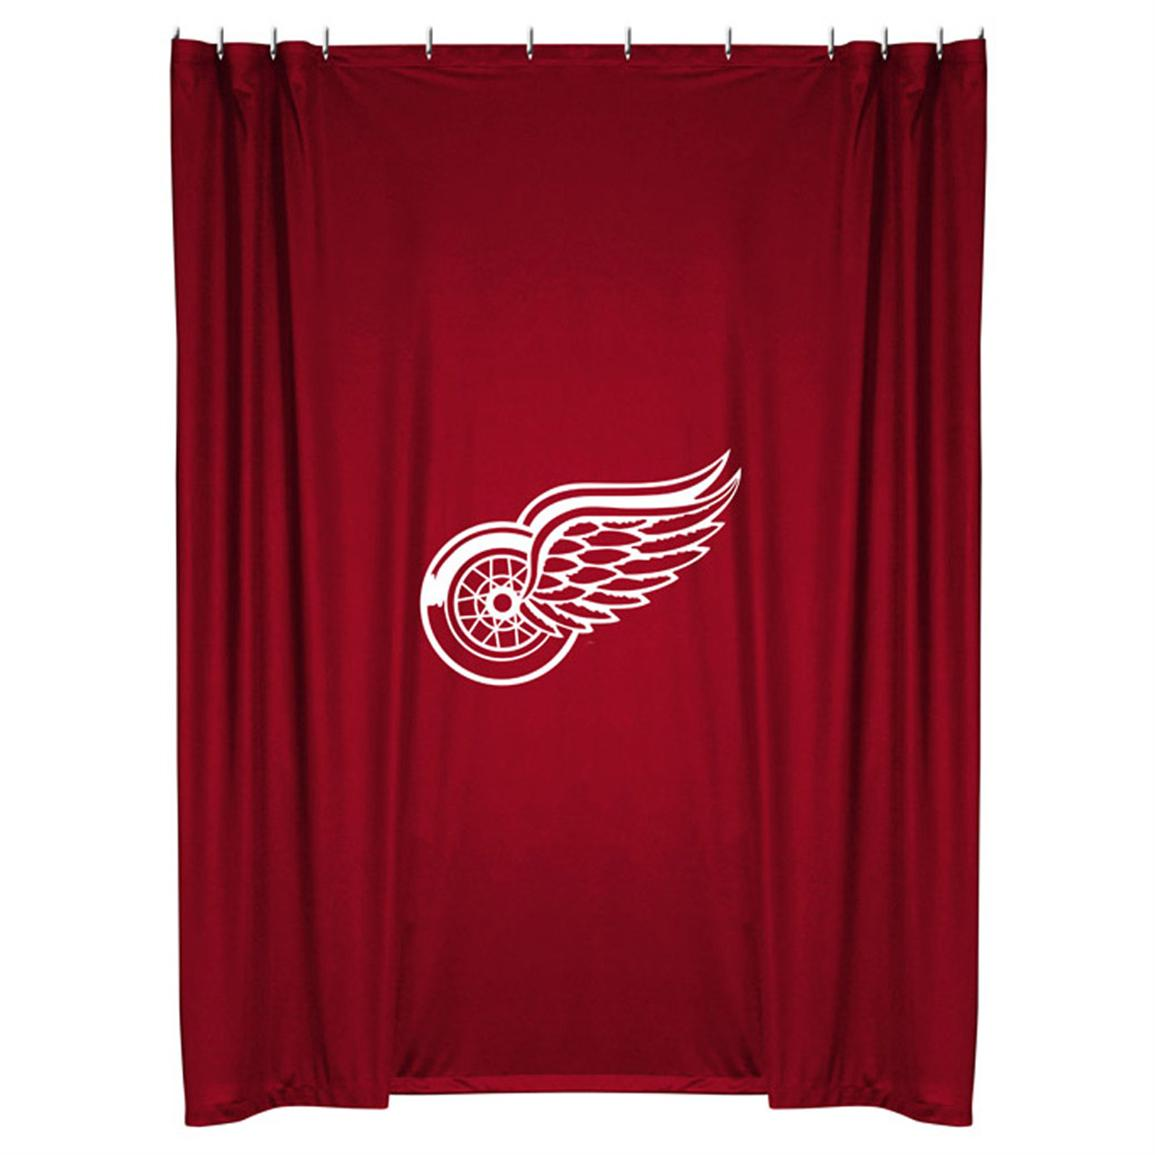 Sports Coverage® NHL Team Shower Curtain, Detroit Red Wings